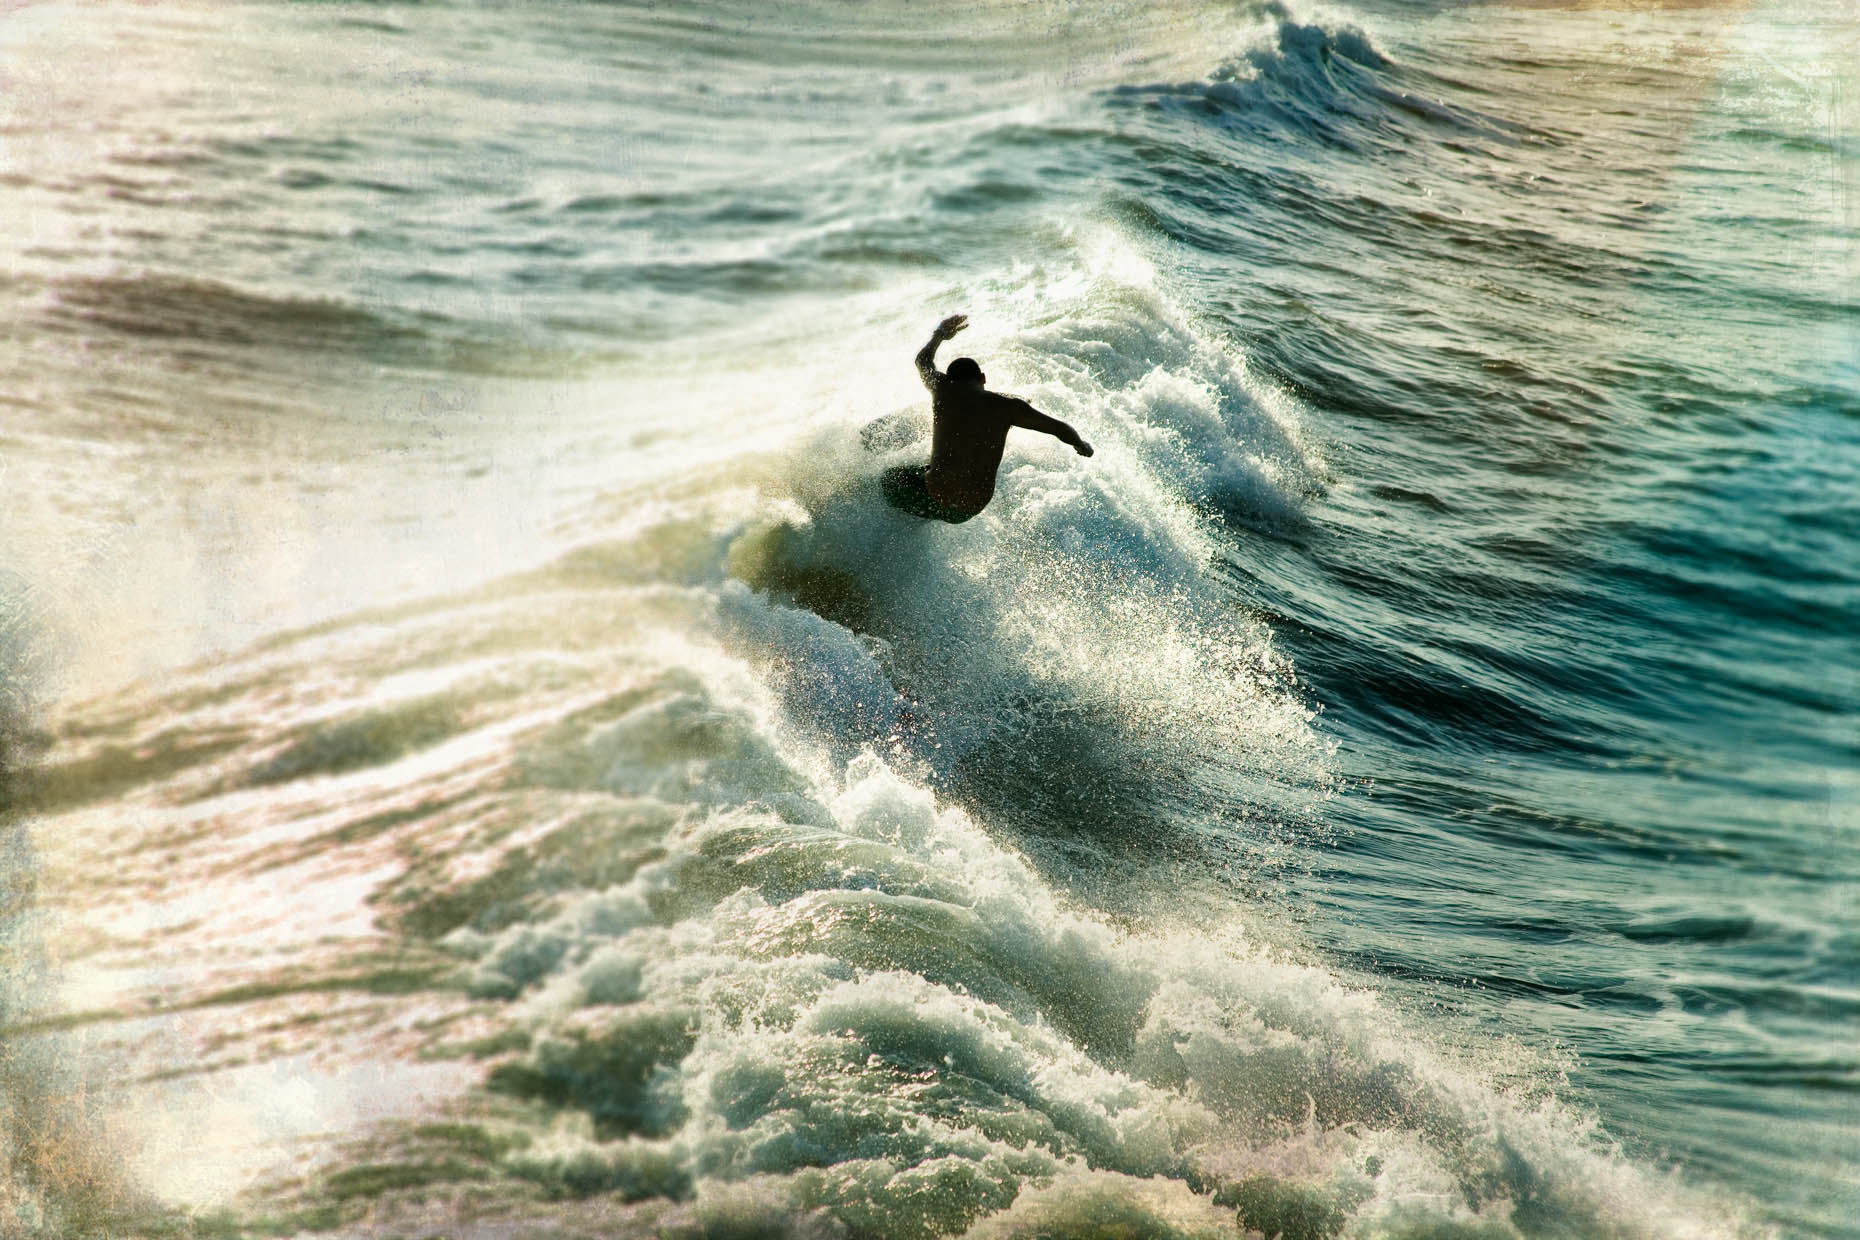 Surfer_Atlantic_Beach